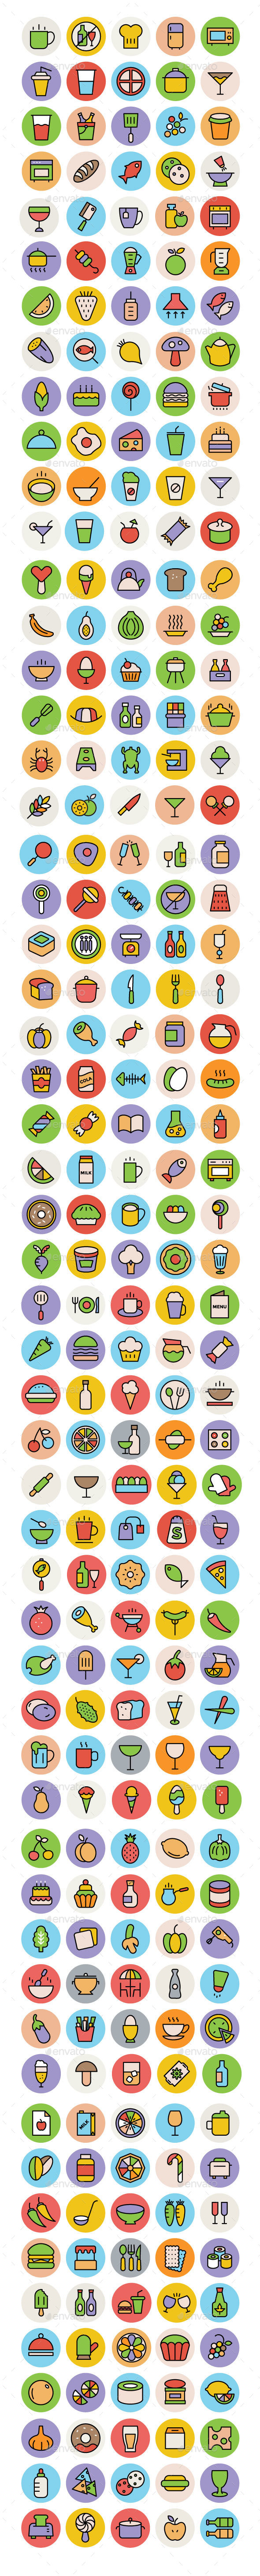 275+ Food Icons Set - Food Objects